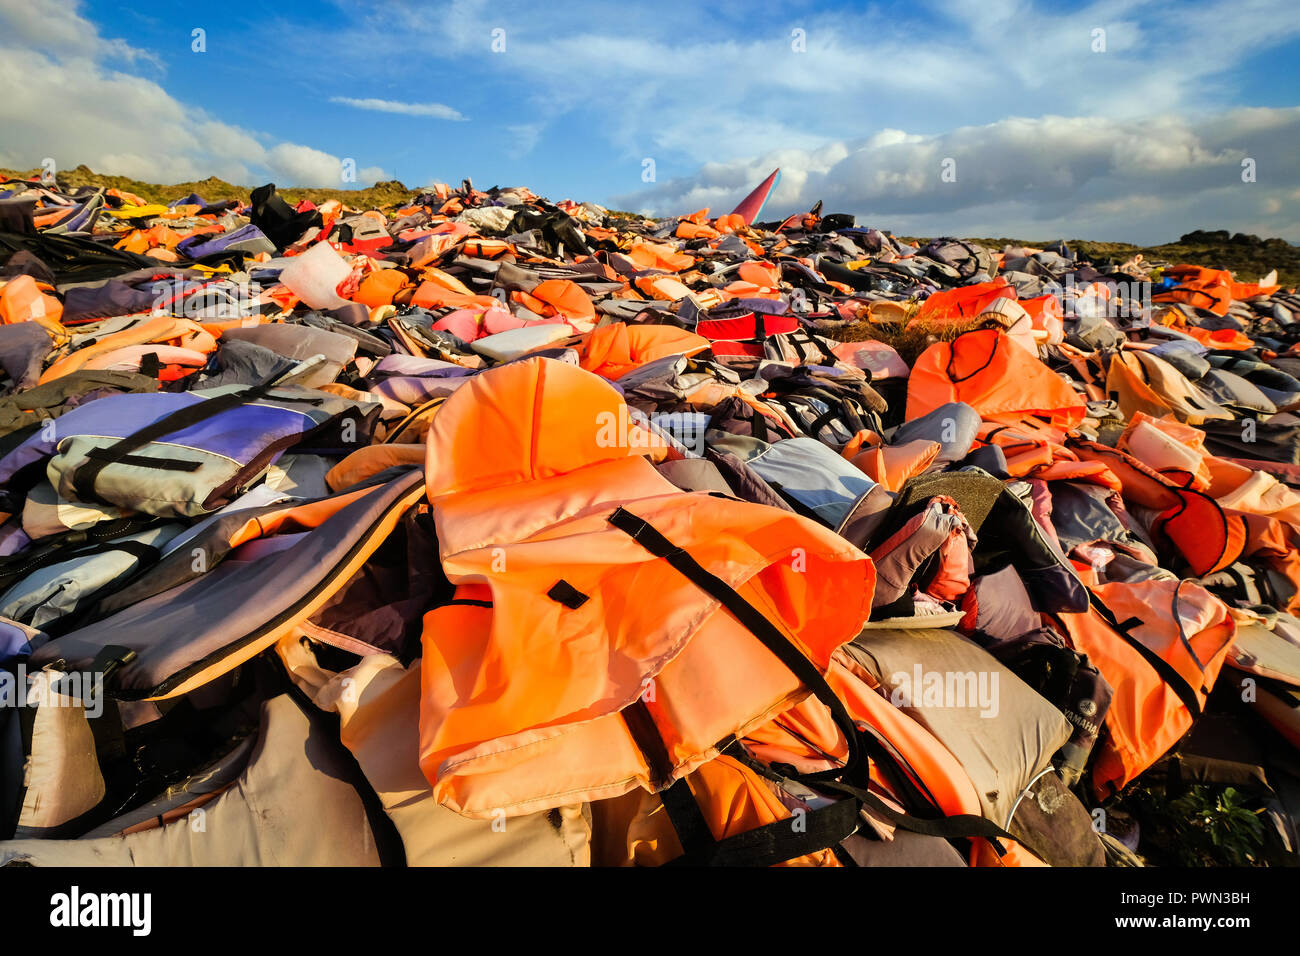 Lifevests of refugees escaping from Turkey across the Mediterranean to the island of Lesbos piling on a garbage landfill at Molivos, Lesvos Island, Greece, May 2018 - Friedhof der Schwimmwesten auf einer Mülldeponie bei Molivos, Insel  Lesbos, Griechenland, Mai 2018 - Stock Image